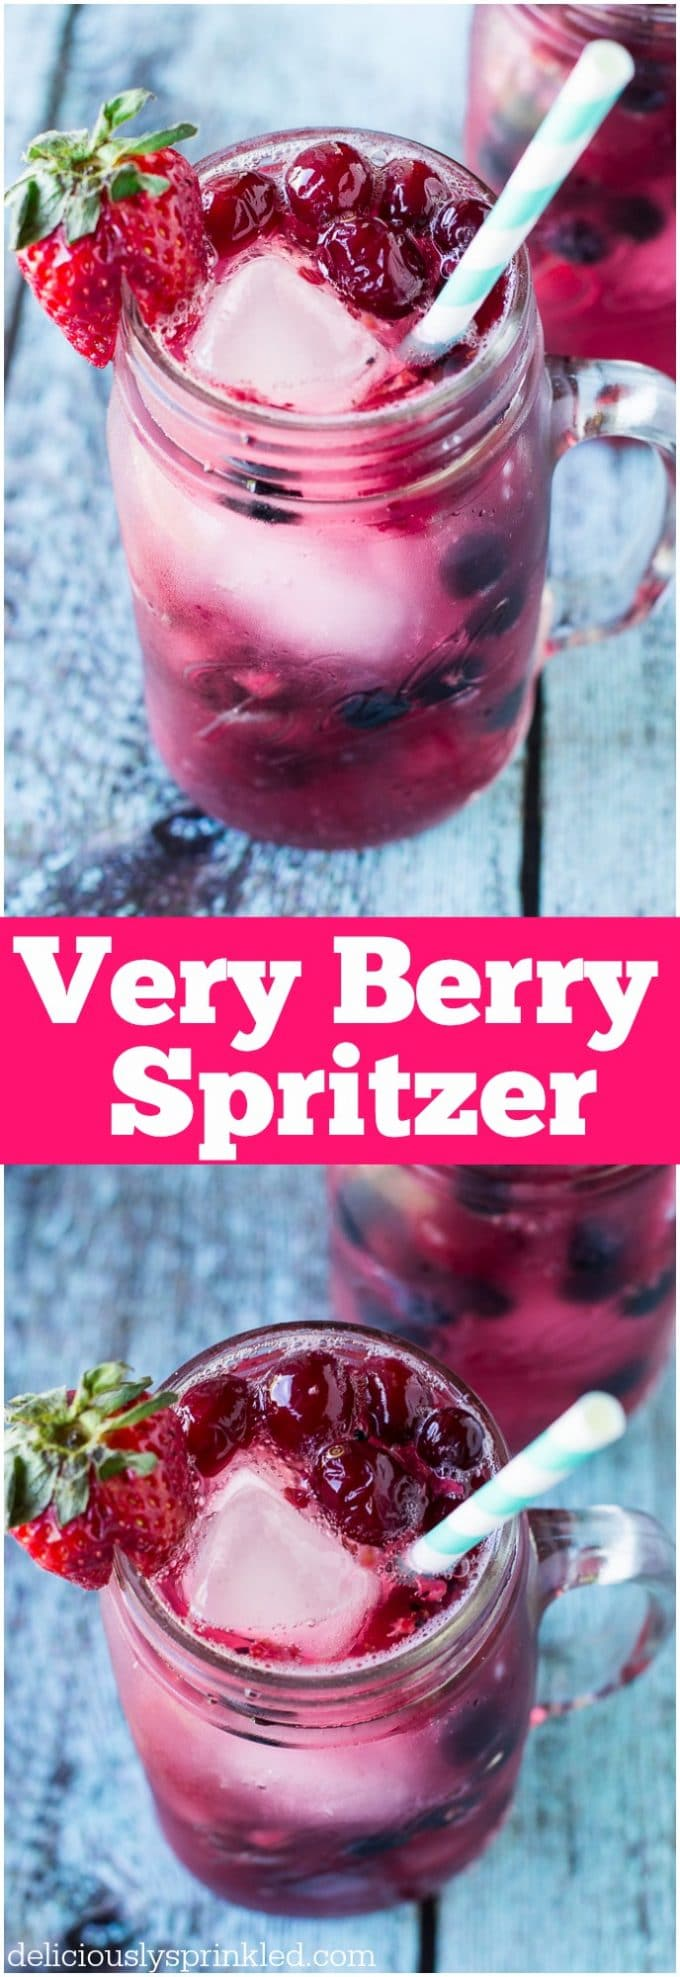 EASY VERY BERRY SPRITZER RECIPE